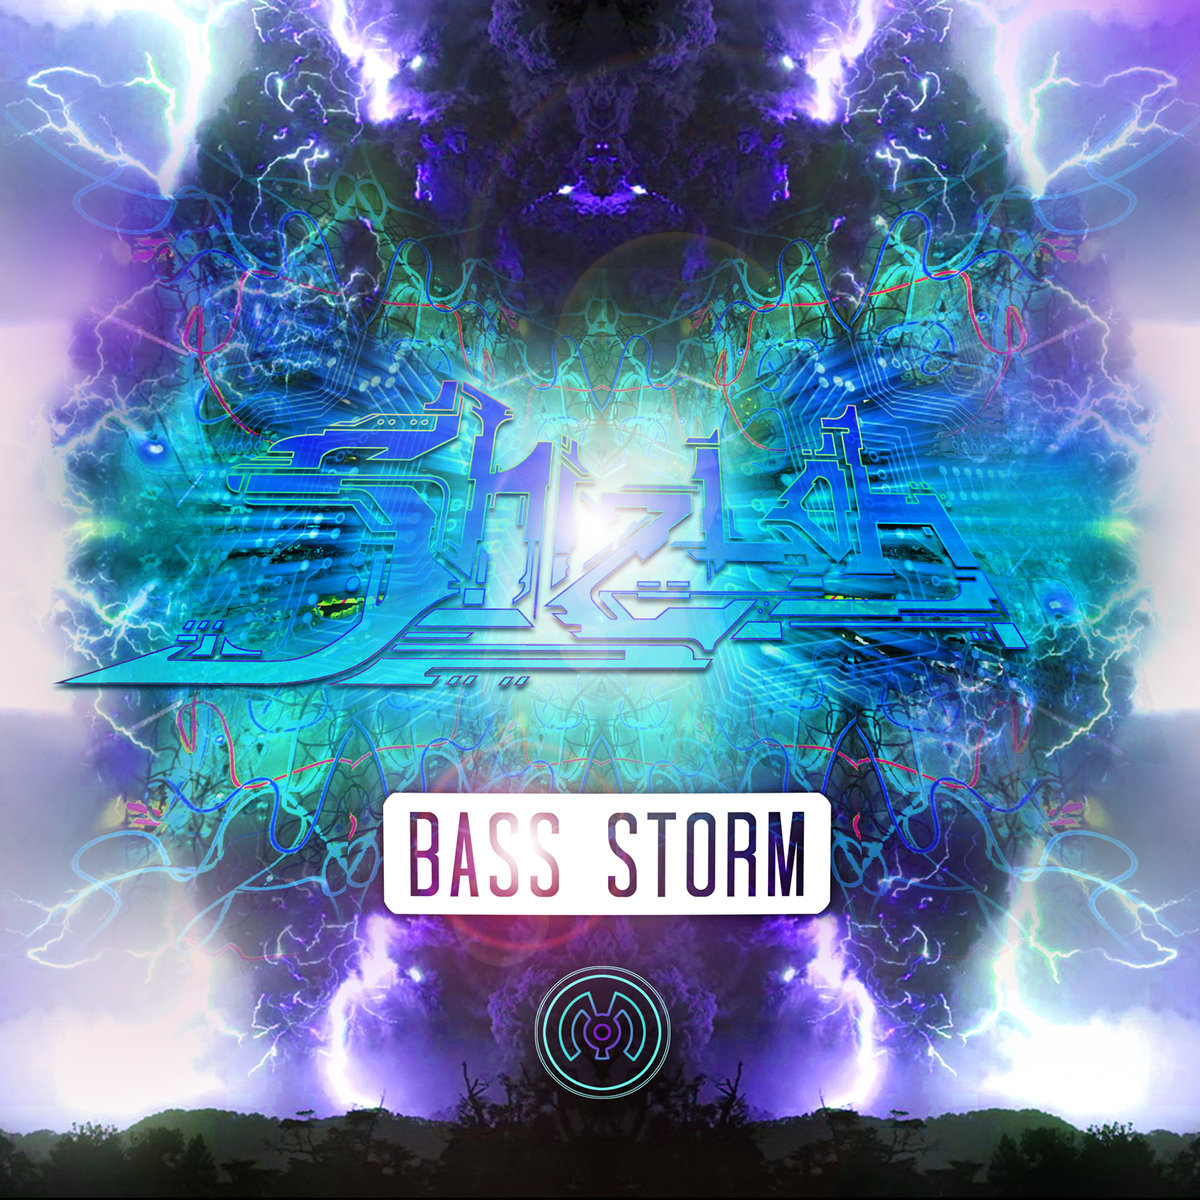 Shizloh - The Good Life @ 'Bass Storm' album (electronic, dubstep)